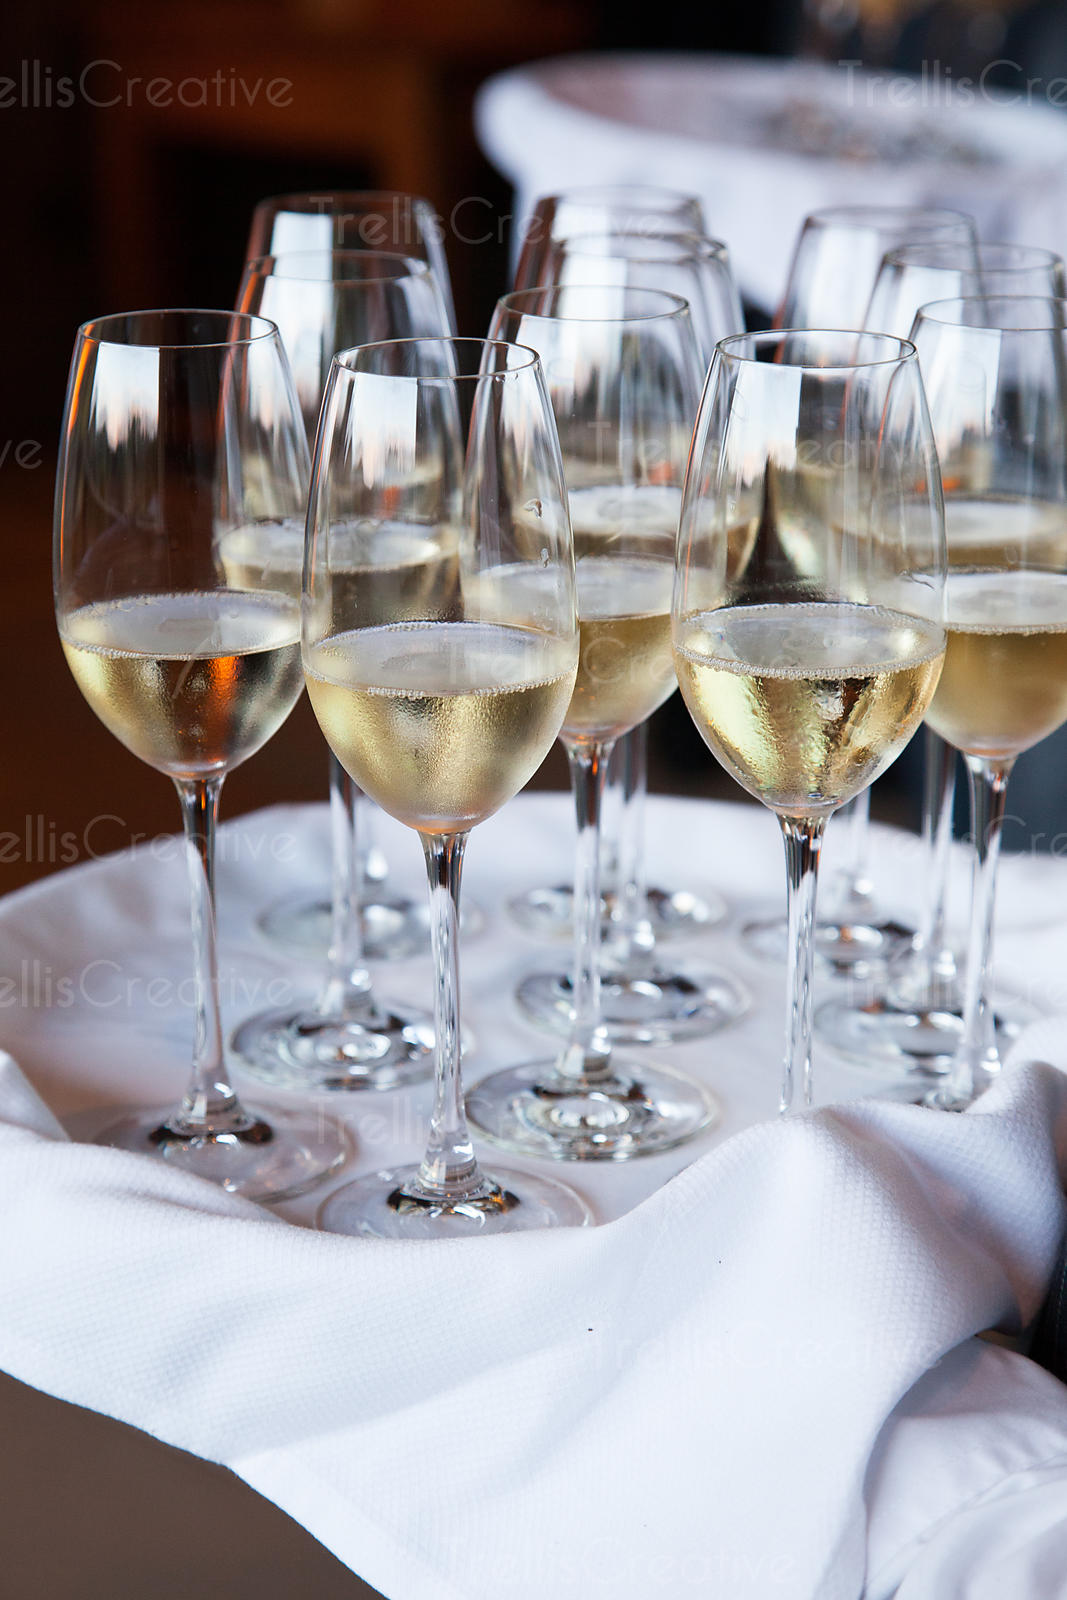 A tray of crystal flutes filled with french champagne